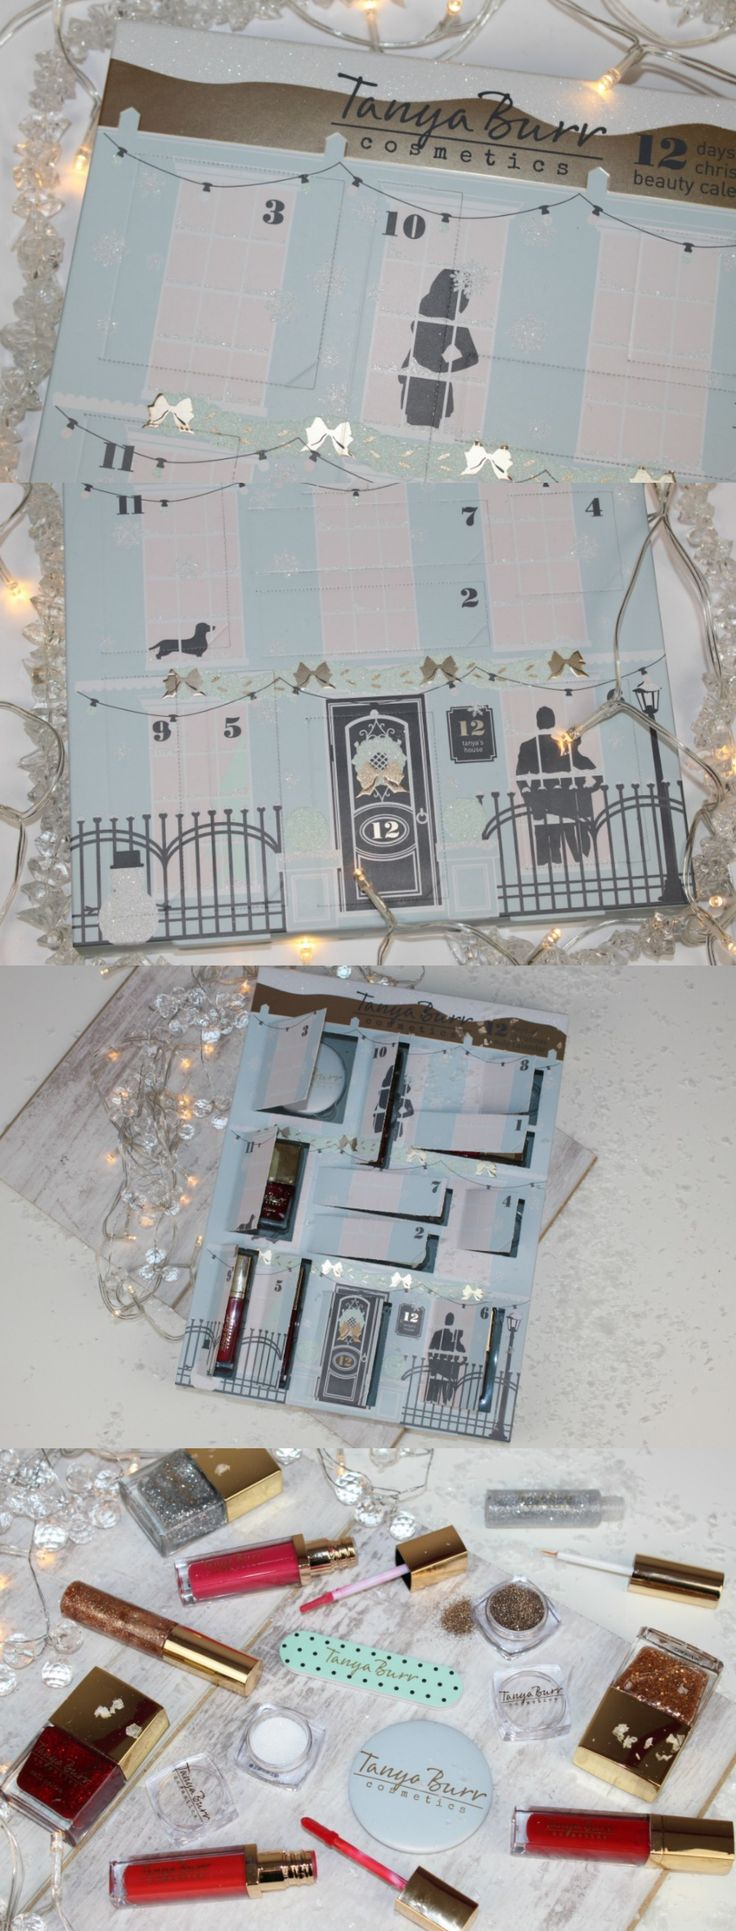 Tanya Burr Advent Calendar 2016 Review & Photos - http://pinkparadisebeauty.blogspot.co.uk/2016/11/tanya-burr-advent-calendar-review-photos.html